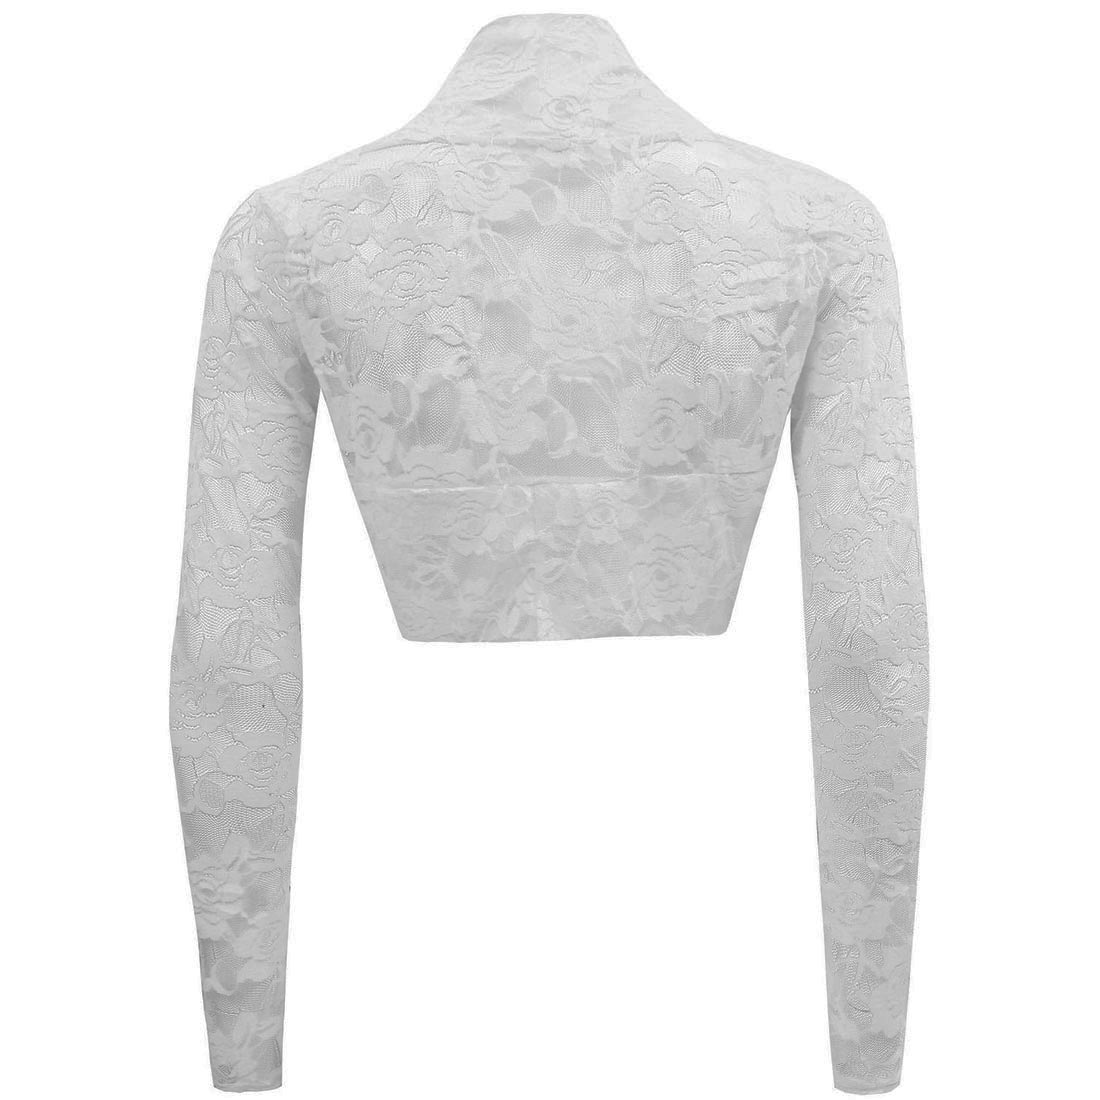 Womens Sheer Lace Long Sleeve Cropped Shrug Top Cardigan Wedding ...